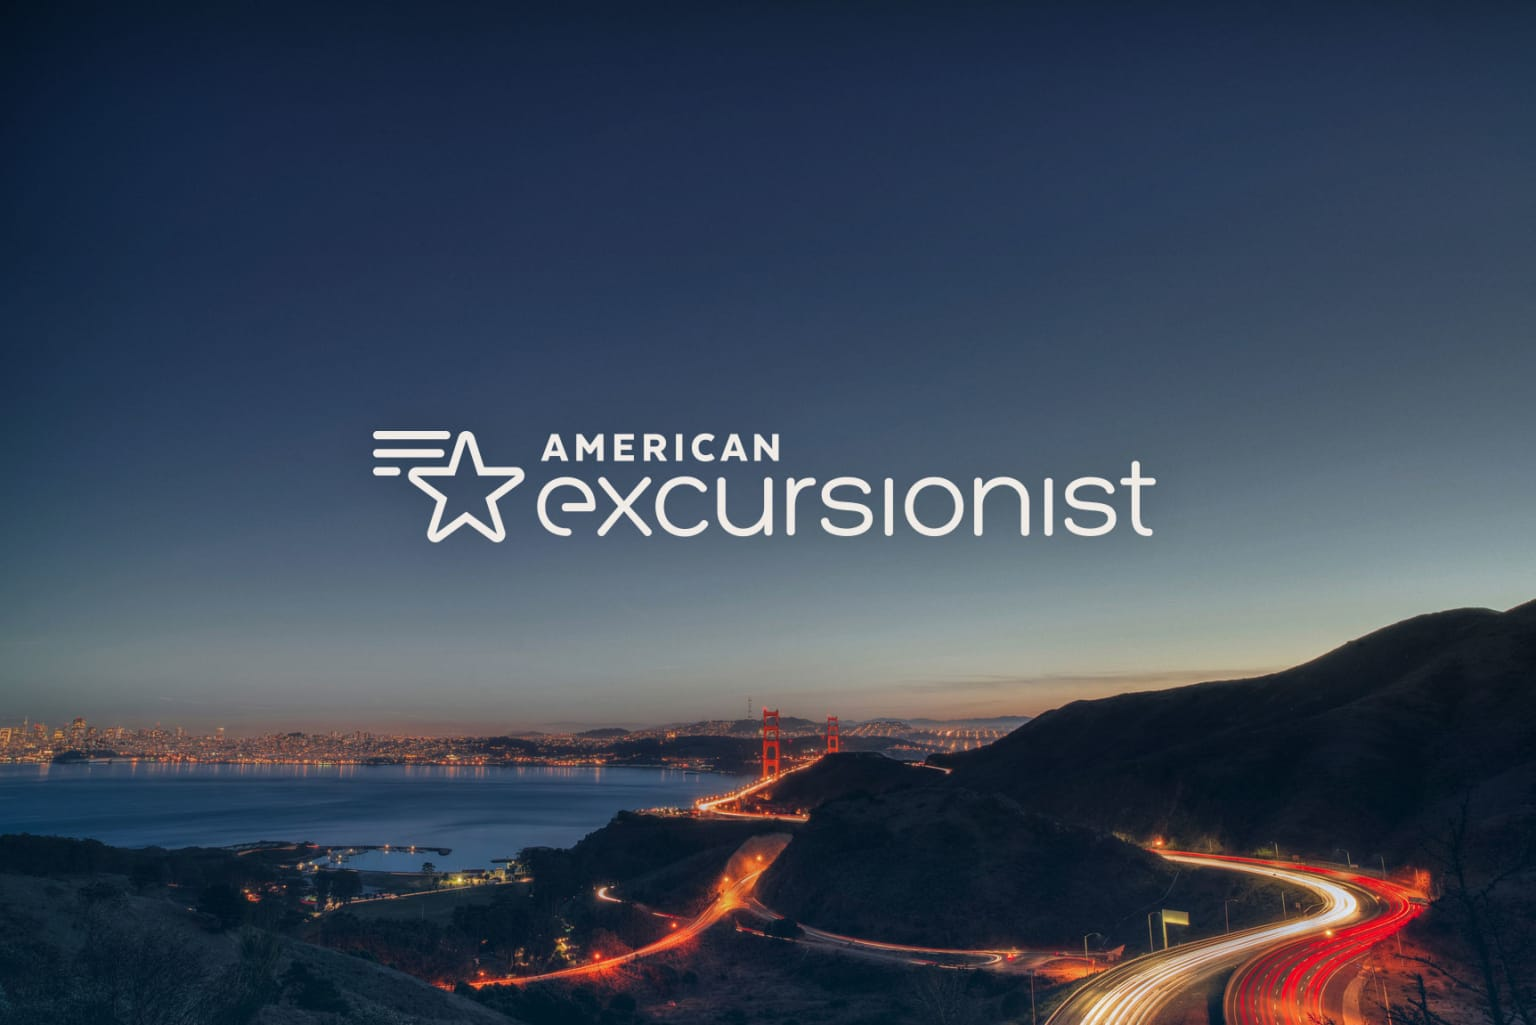 American Excursionist